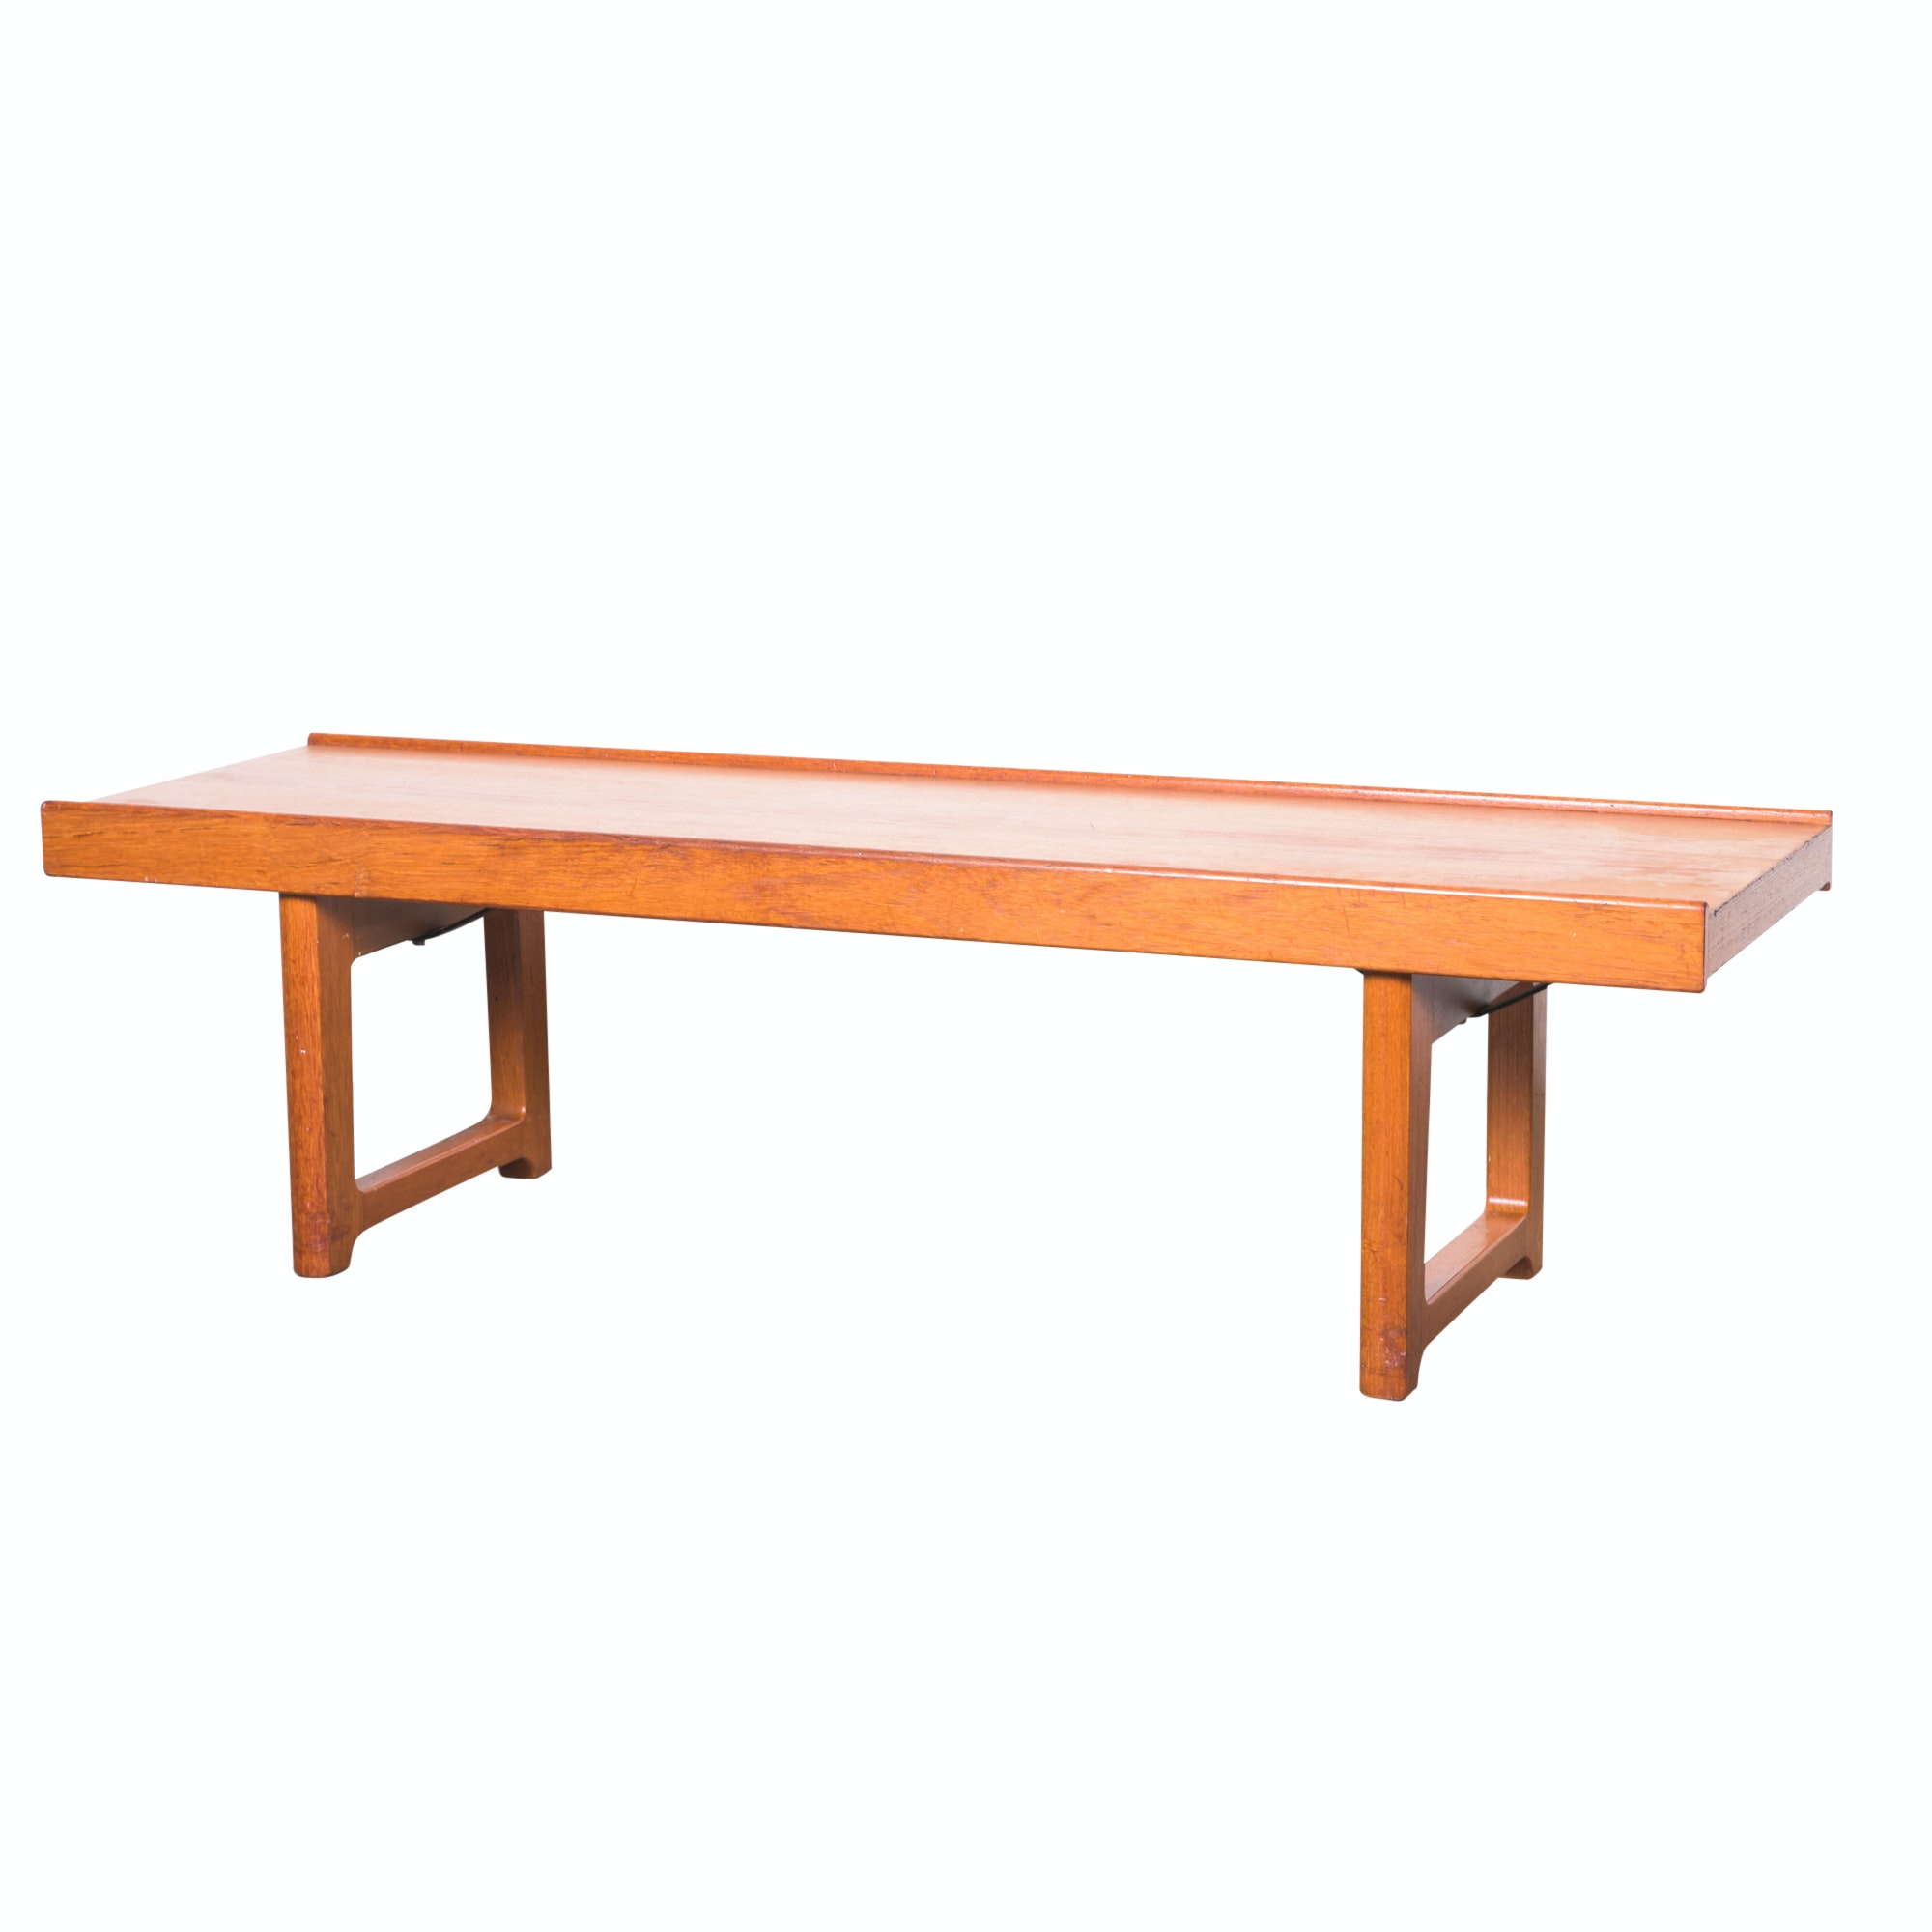 "Norwegian Modern Teak ""Korbo"" Bench by Torbjørn Afdal for Bruksbo, 1960s"